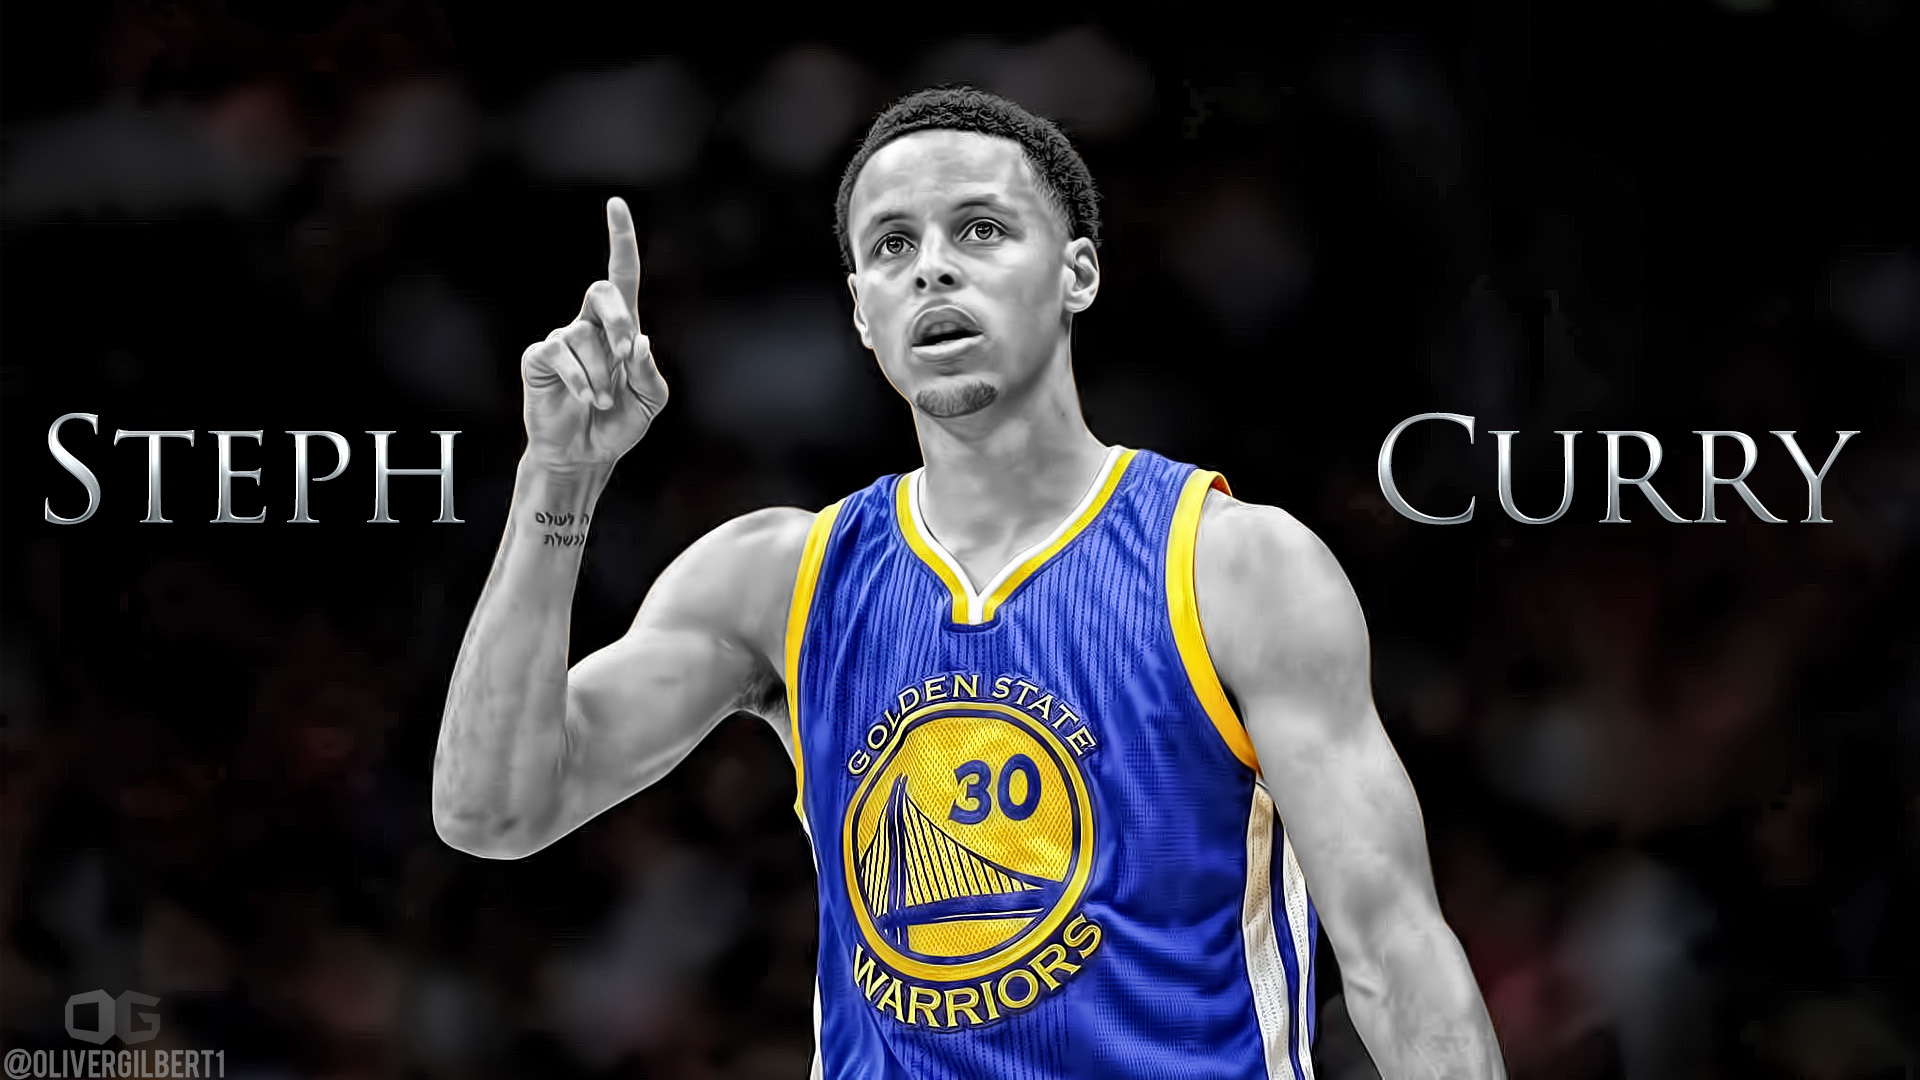 Stephen Curry Wallpaper For Lapto